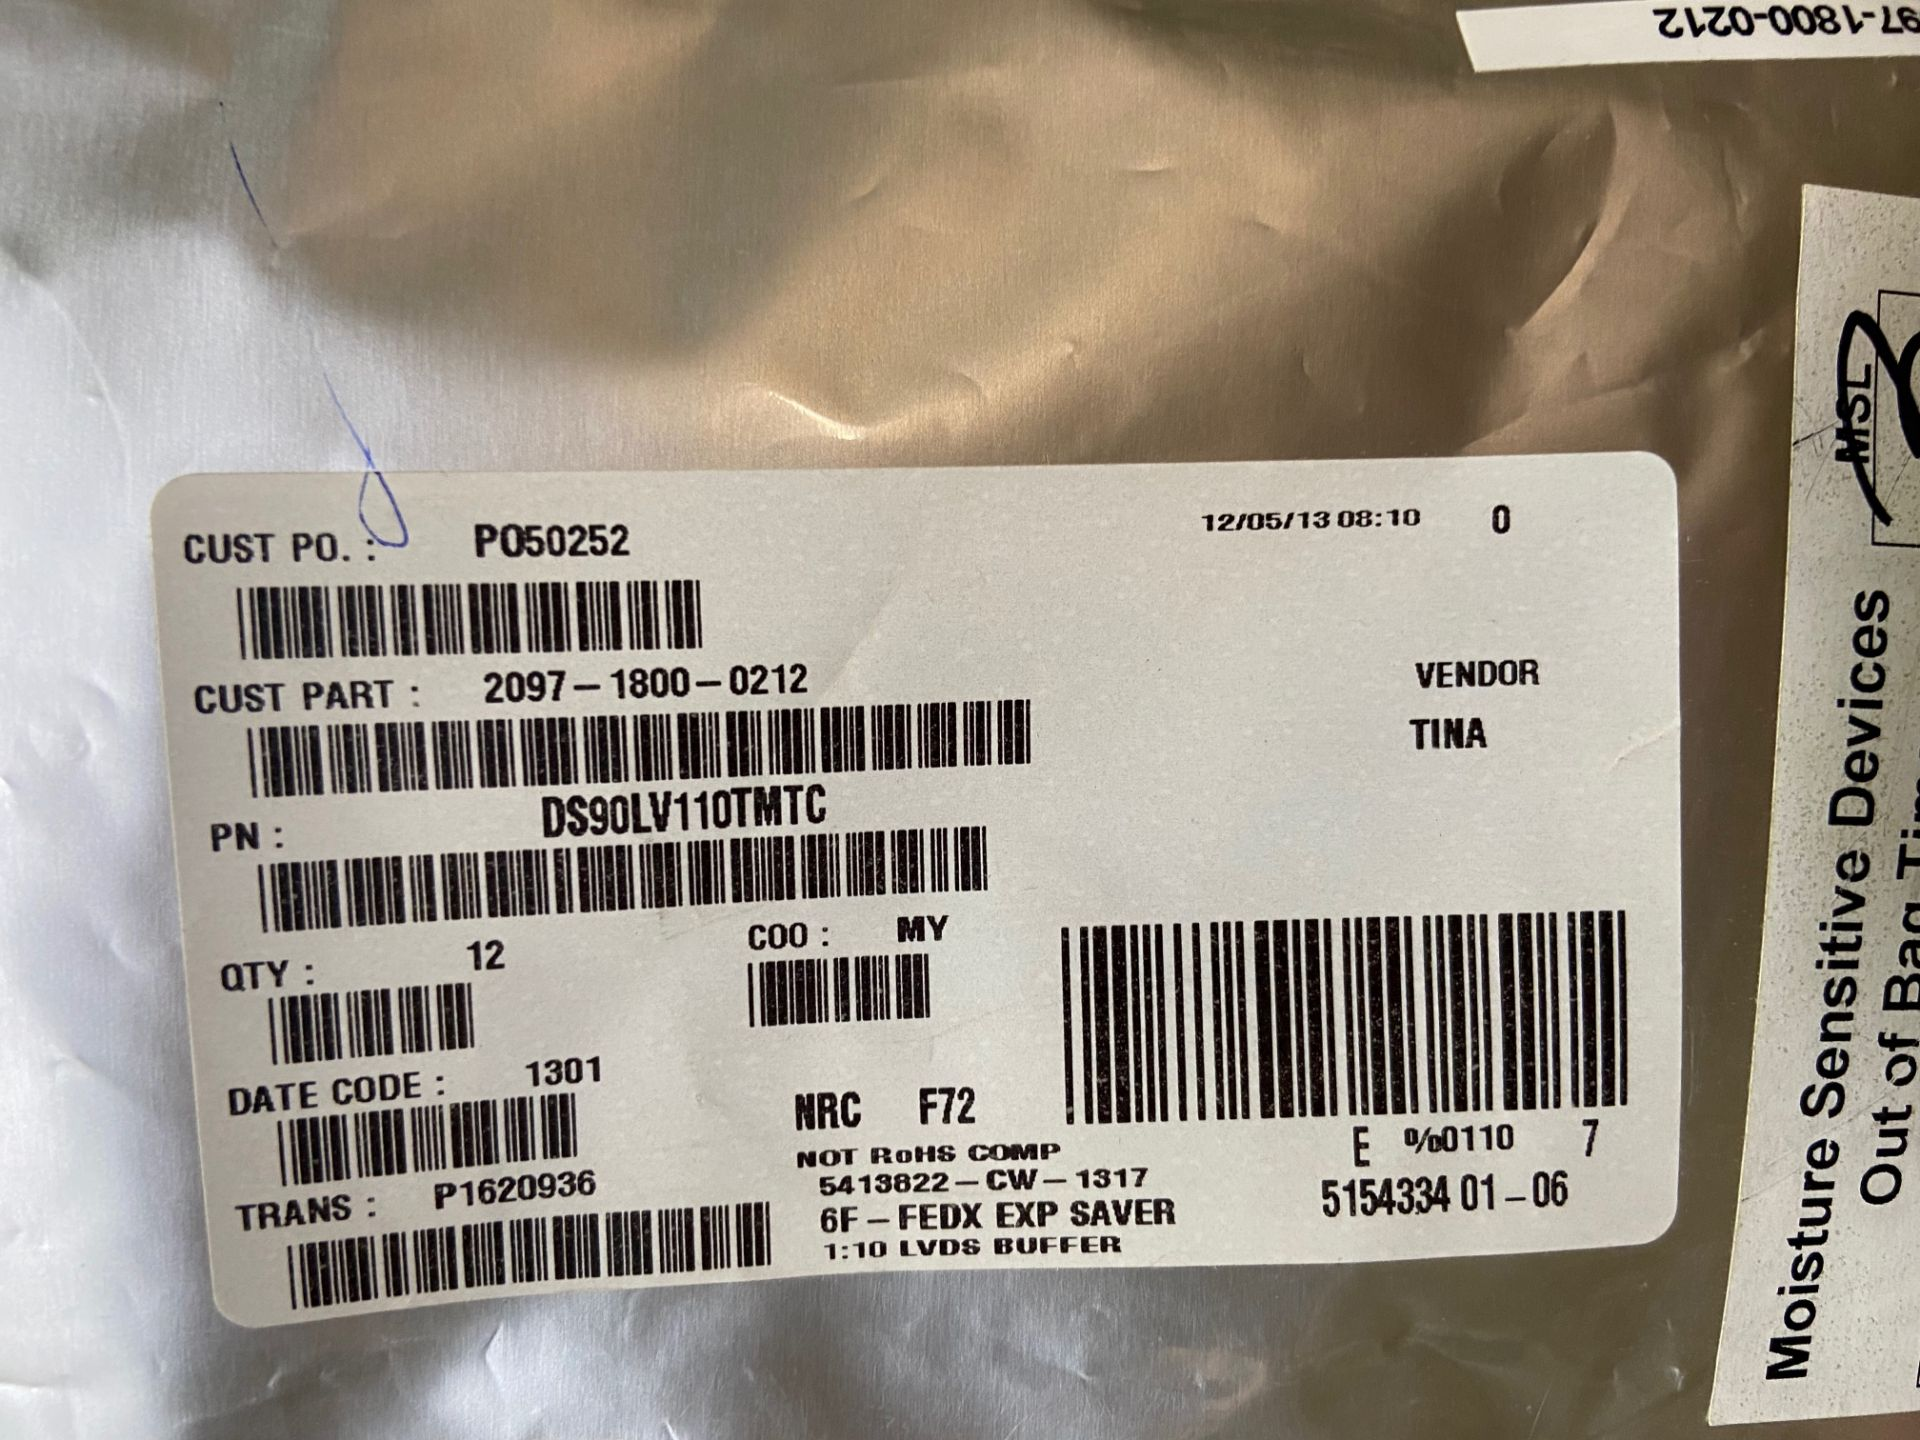 Texas Instruments DS90LV110TMTC, LVDS Receiver 800Mbps 0.45V 28-Pin TSSOP Tube, QTY 86 - Image 6 of 12